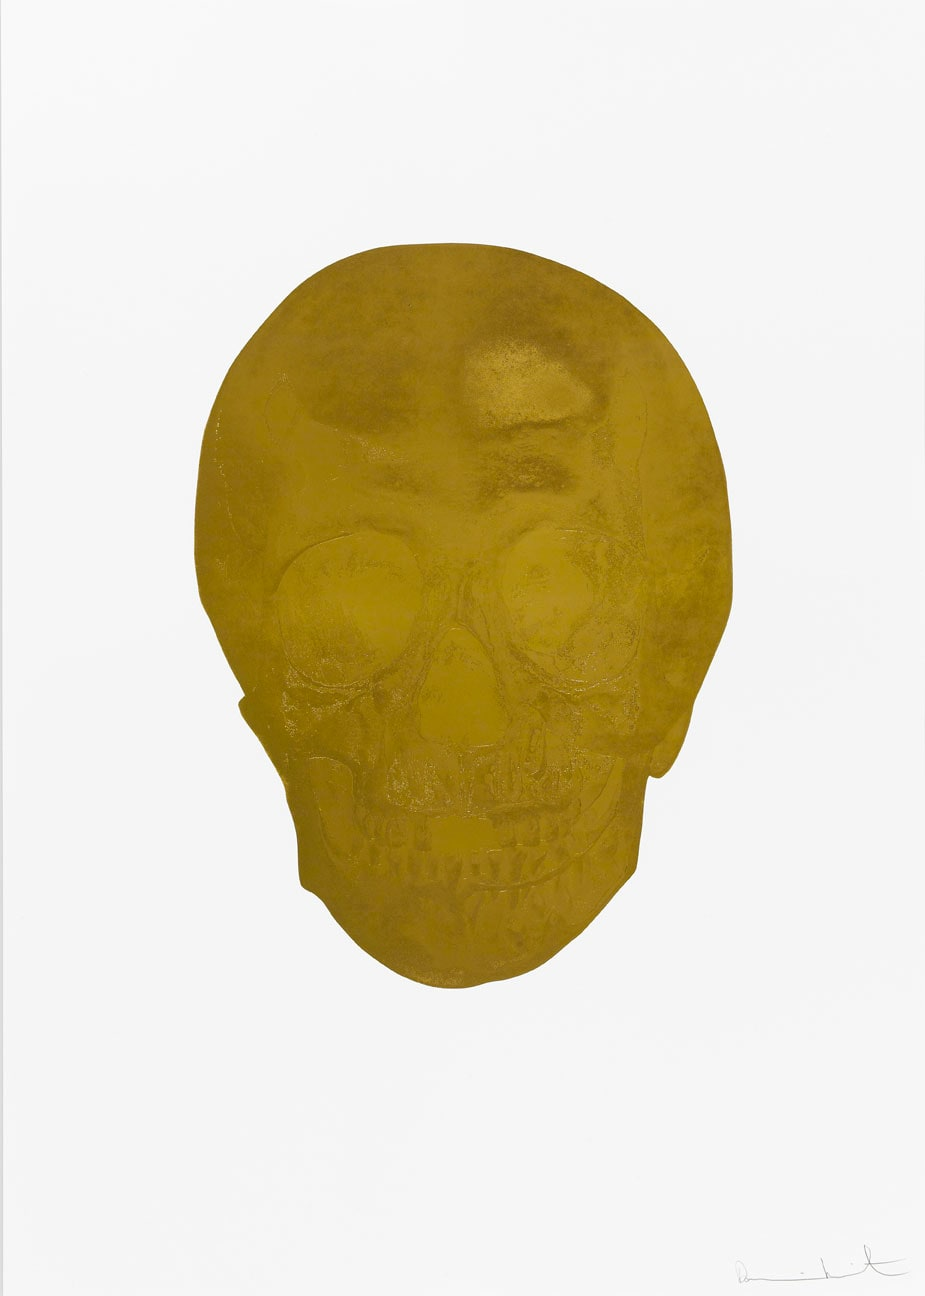 Damien Hirst Death Or Glory European Gold/European Gold Glorious Skull, 2011 2 colour foil block on 300gsm Arches 88 archival paper. Signed and numbered. Published by Paul Stolper and Other Criteria. White aluminium powder coated frame. 72 x 51 cm; Framed 76.8 x 55.8 cm OC8360 Edition of 2